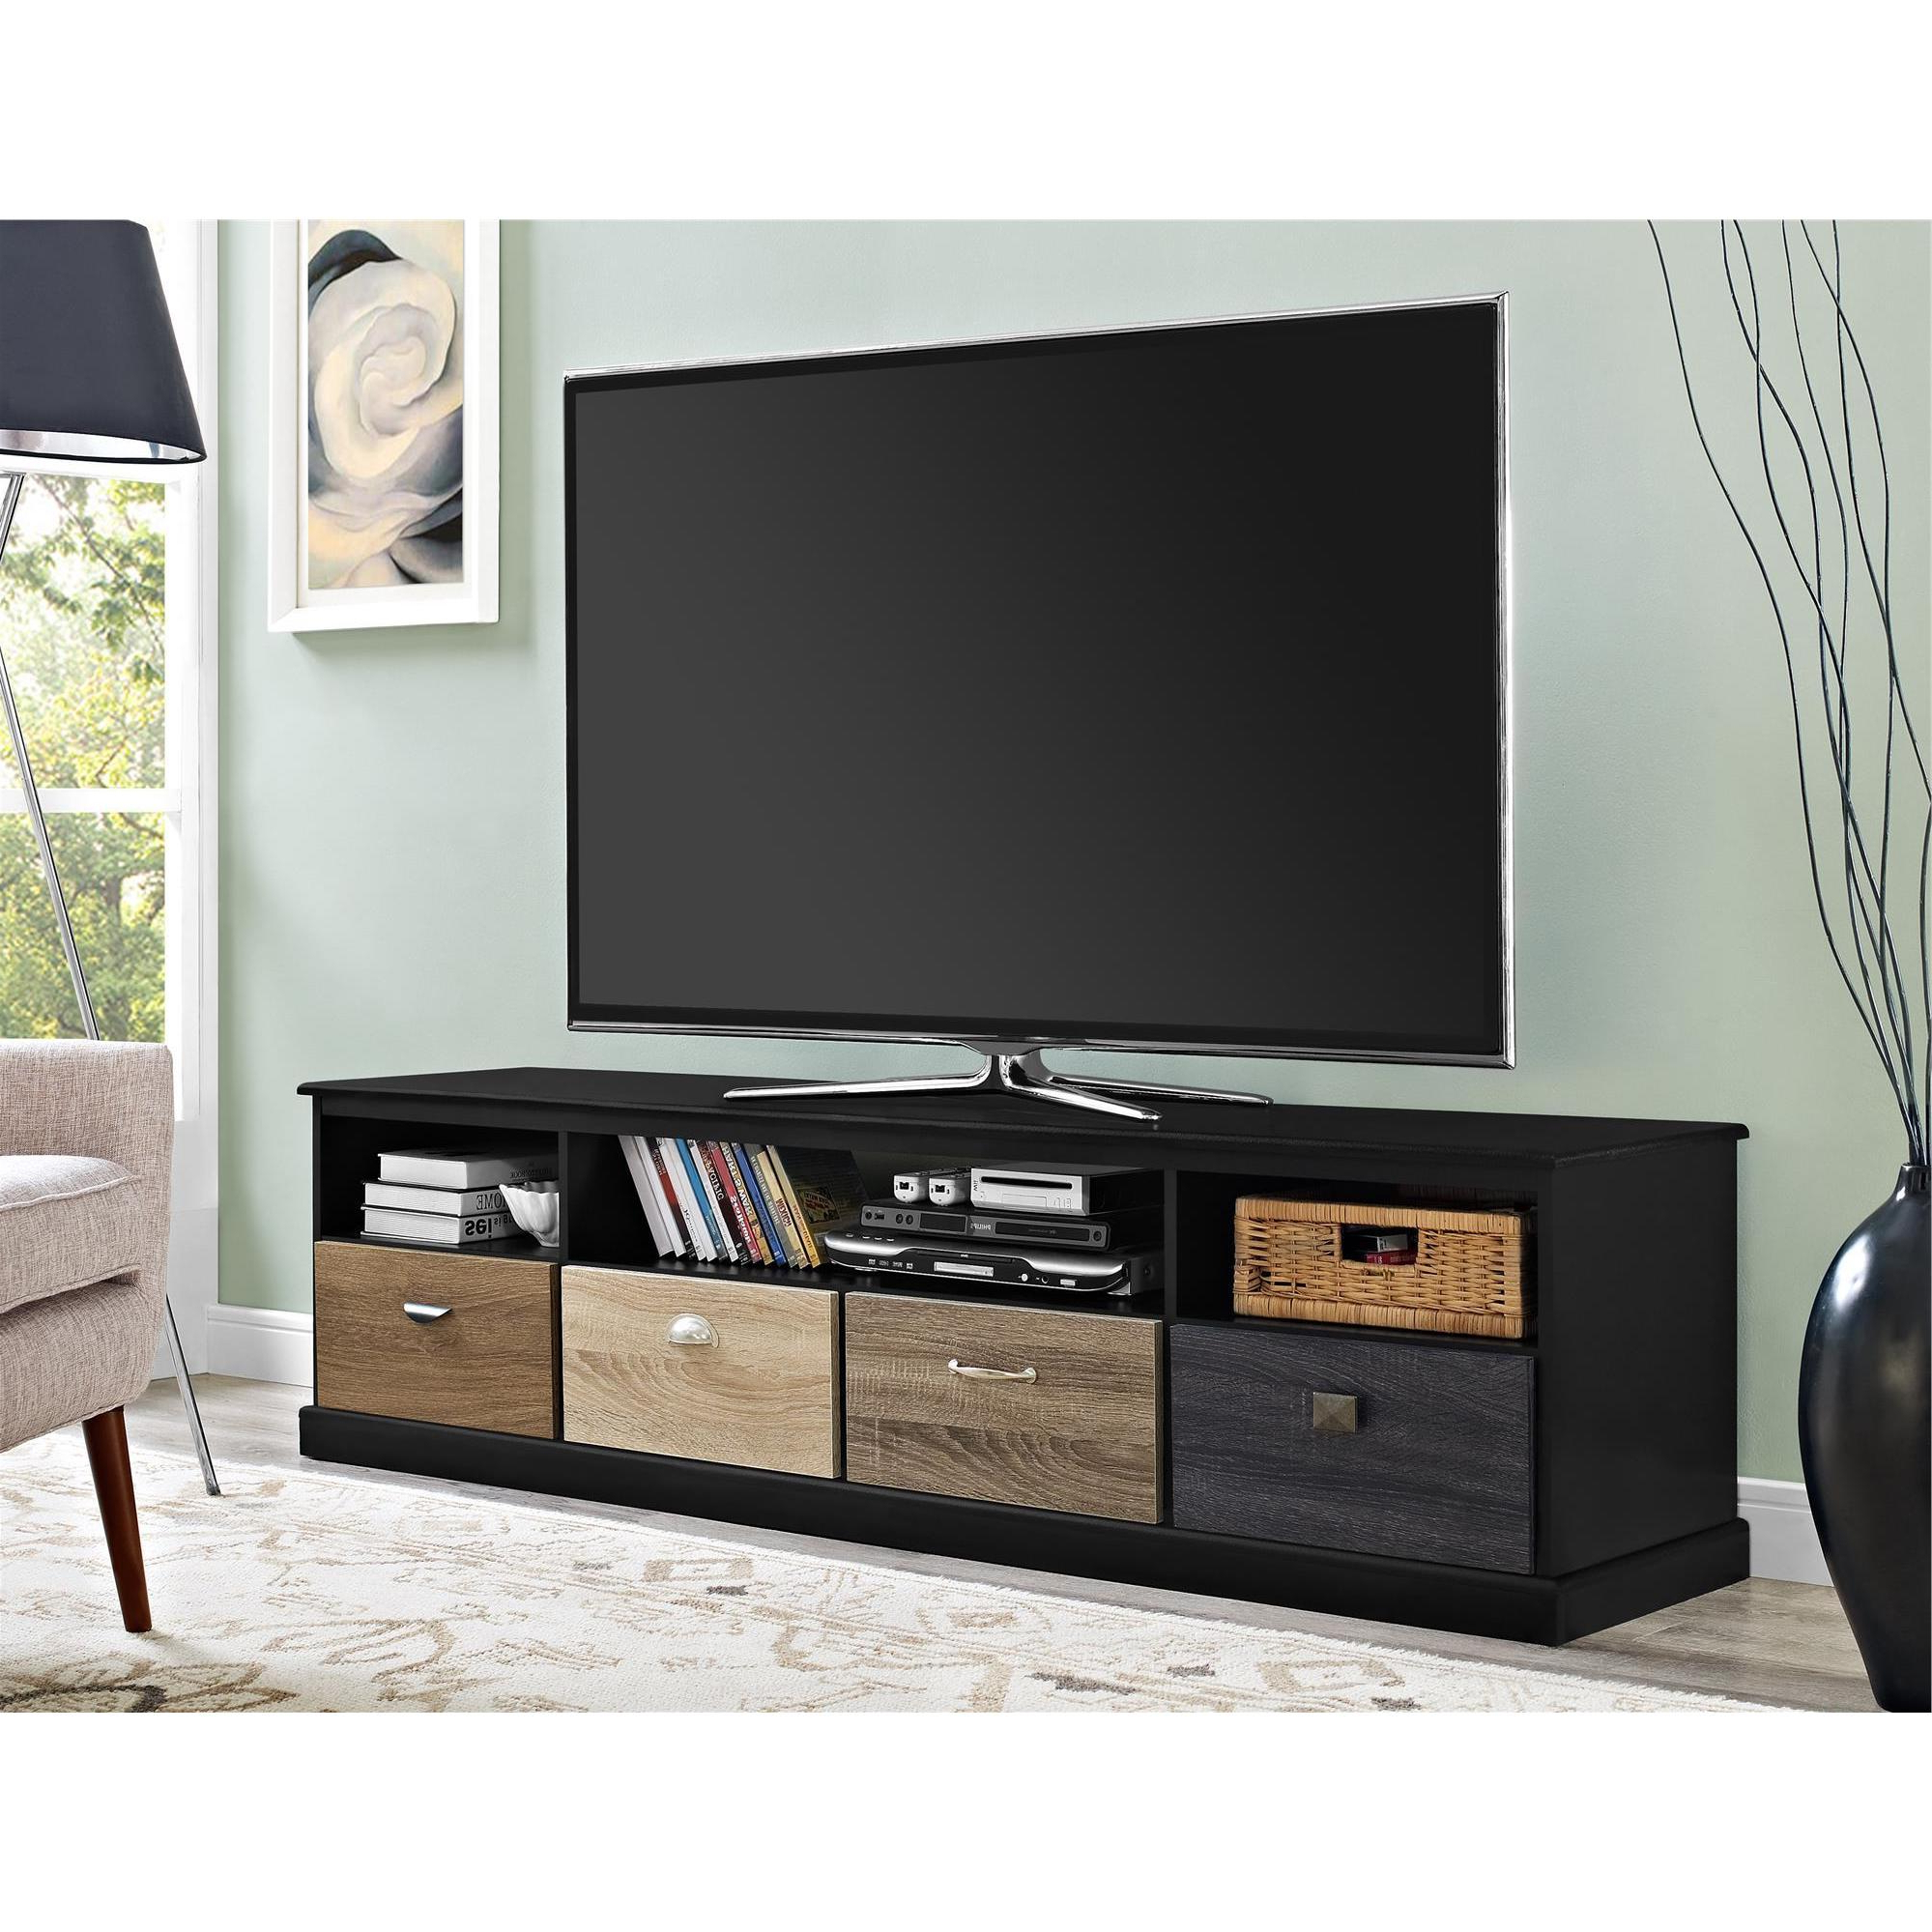 Avenue Greene Mercer 65 Inch Black Tv Console With Multicolored Drawer  Fronts Inside Kilian Grey 74 Inch Tv Stands (Gallery 3 of 20)